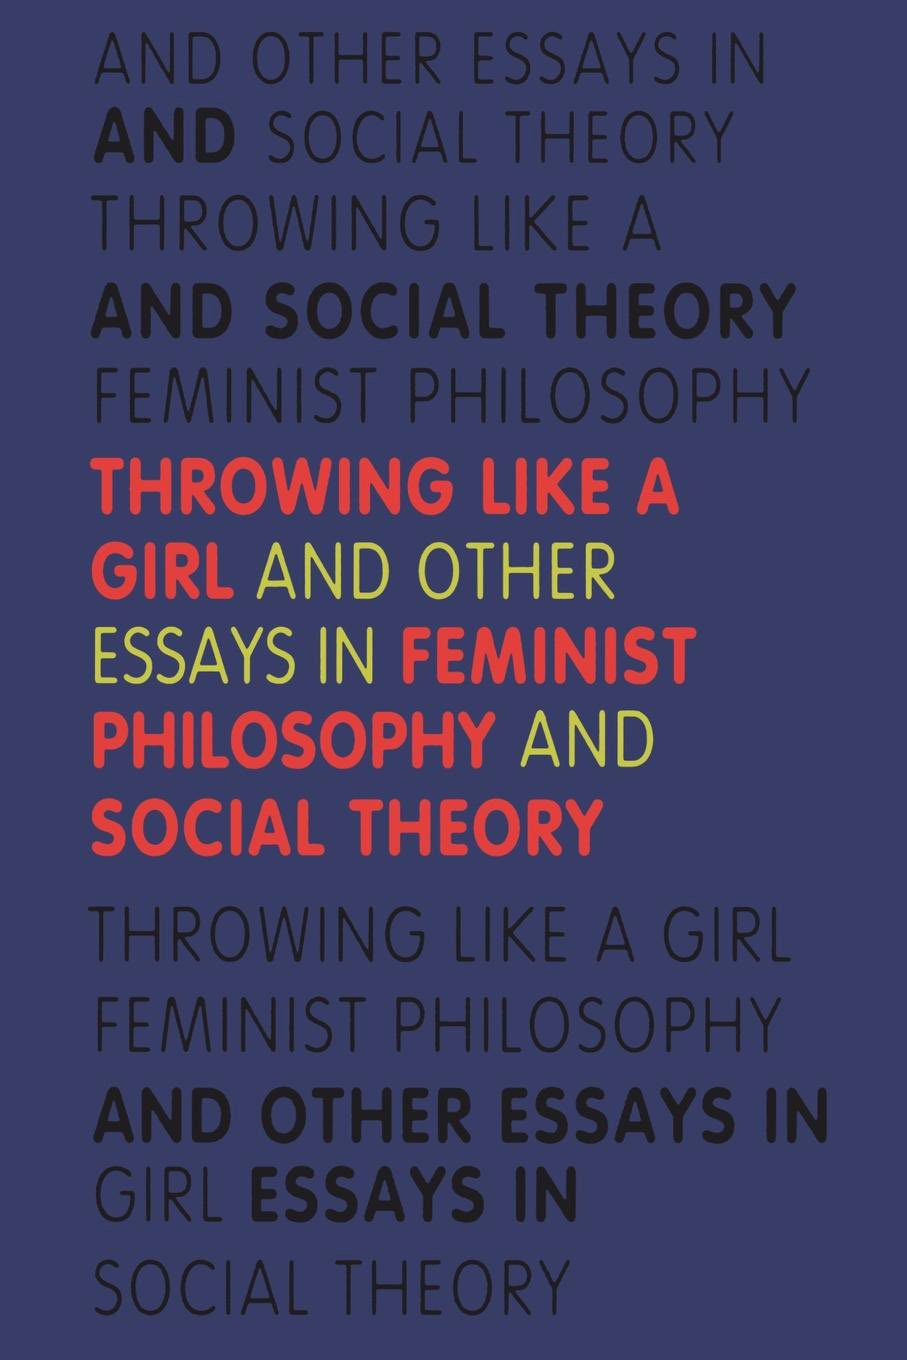 essays on feminism s feminism essay roxane gay on ldquo bad  throwing like a girl and other essays in feminist philosophy and throwing like a girl and